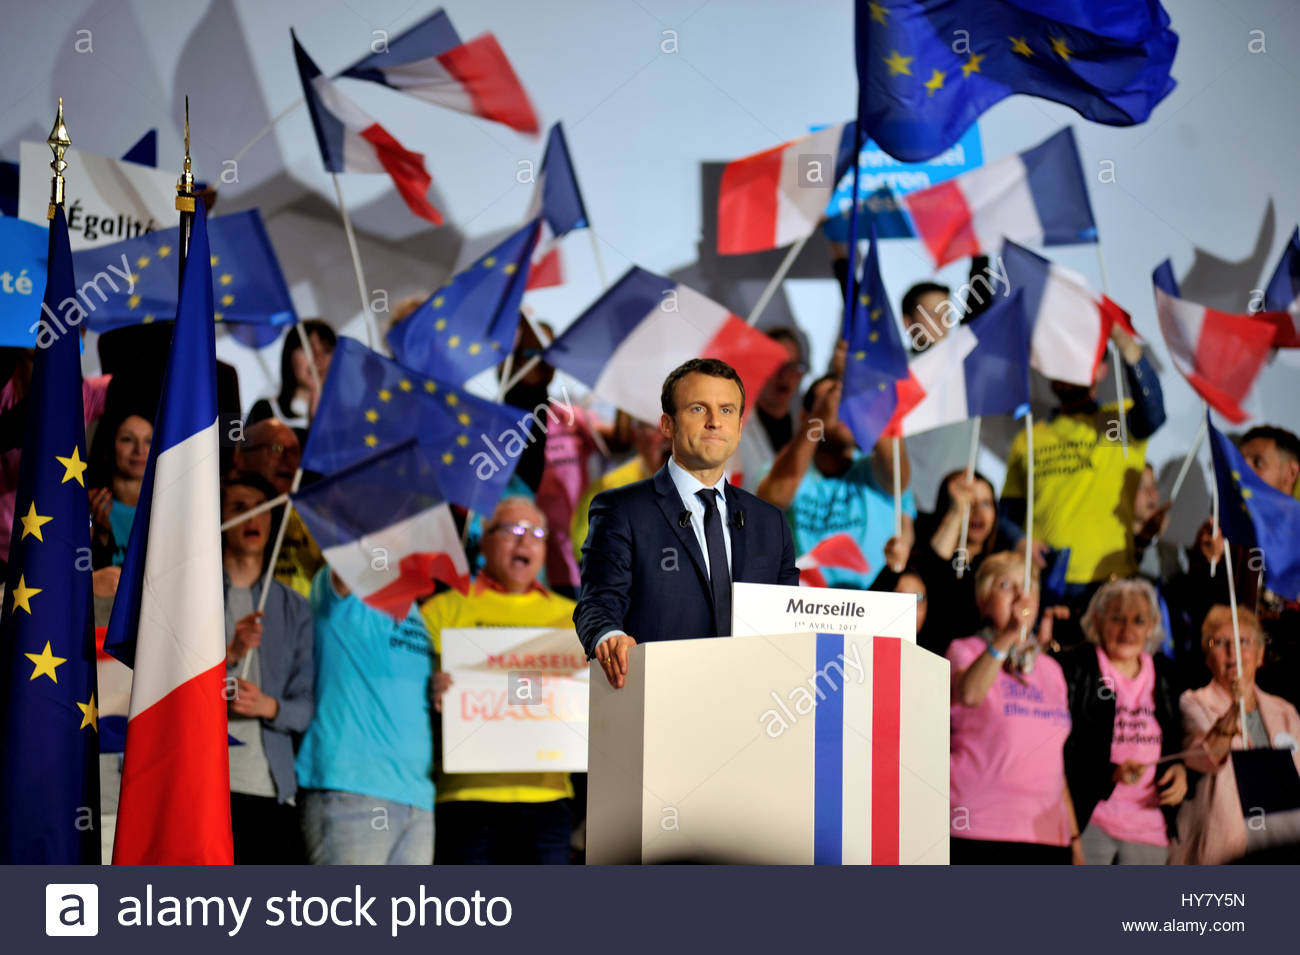 France elections 2017 live - Marseille France 1st Apr 2017 French Presidential Election Candidate For The En